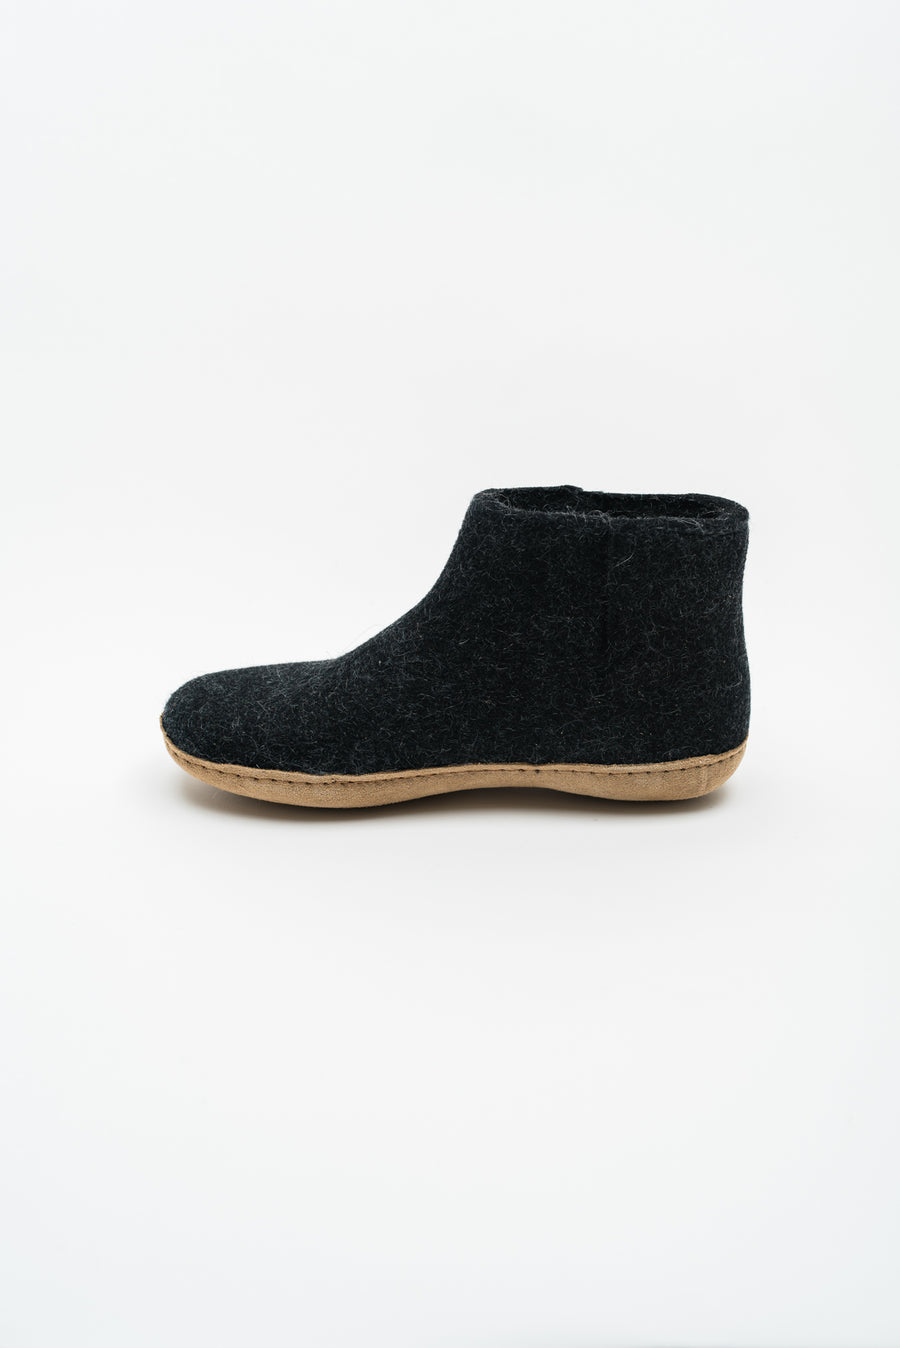 Low Boot - Charcoal